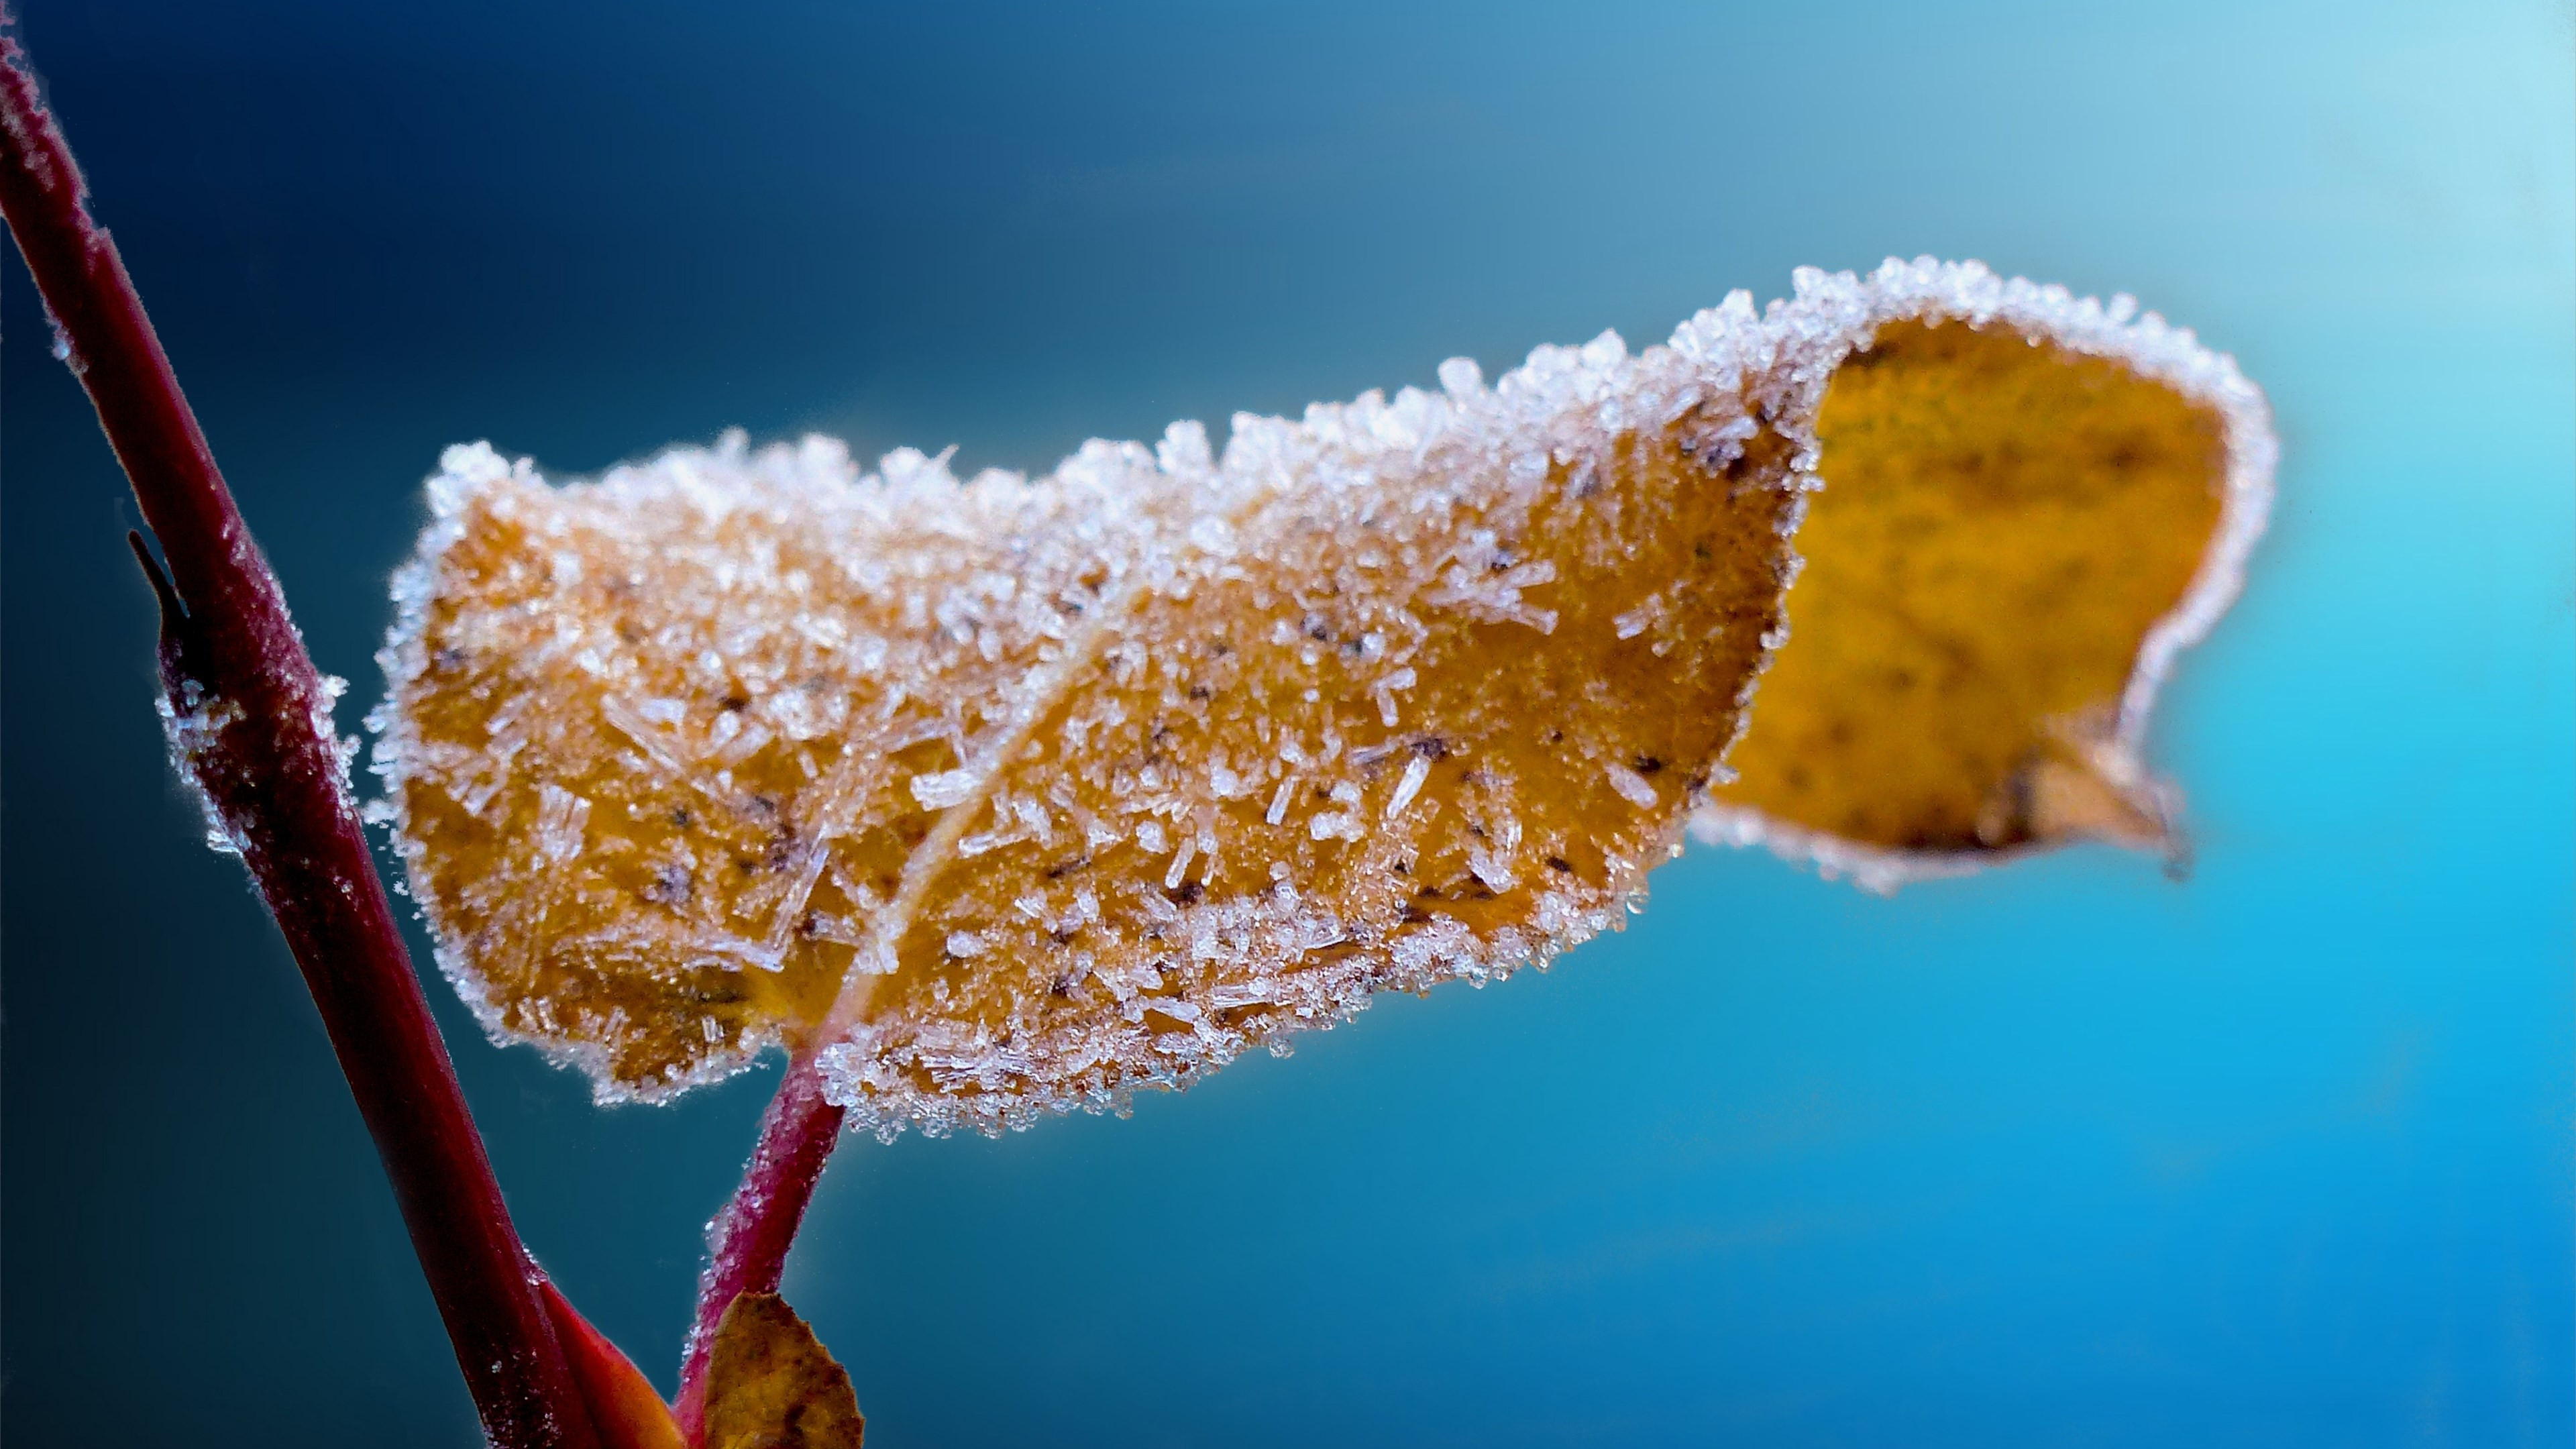 Frosted leaf | 3840x2160 wallpaper